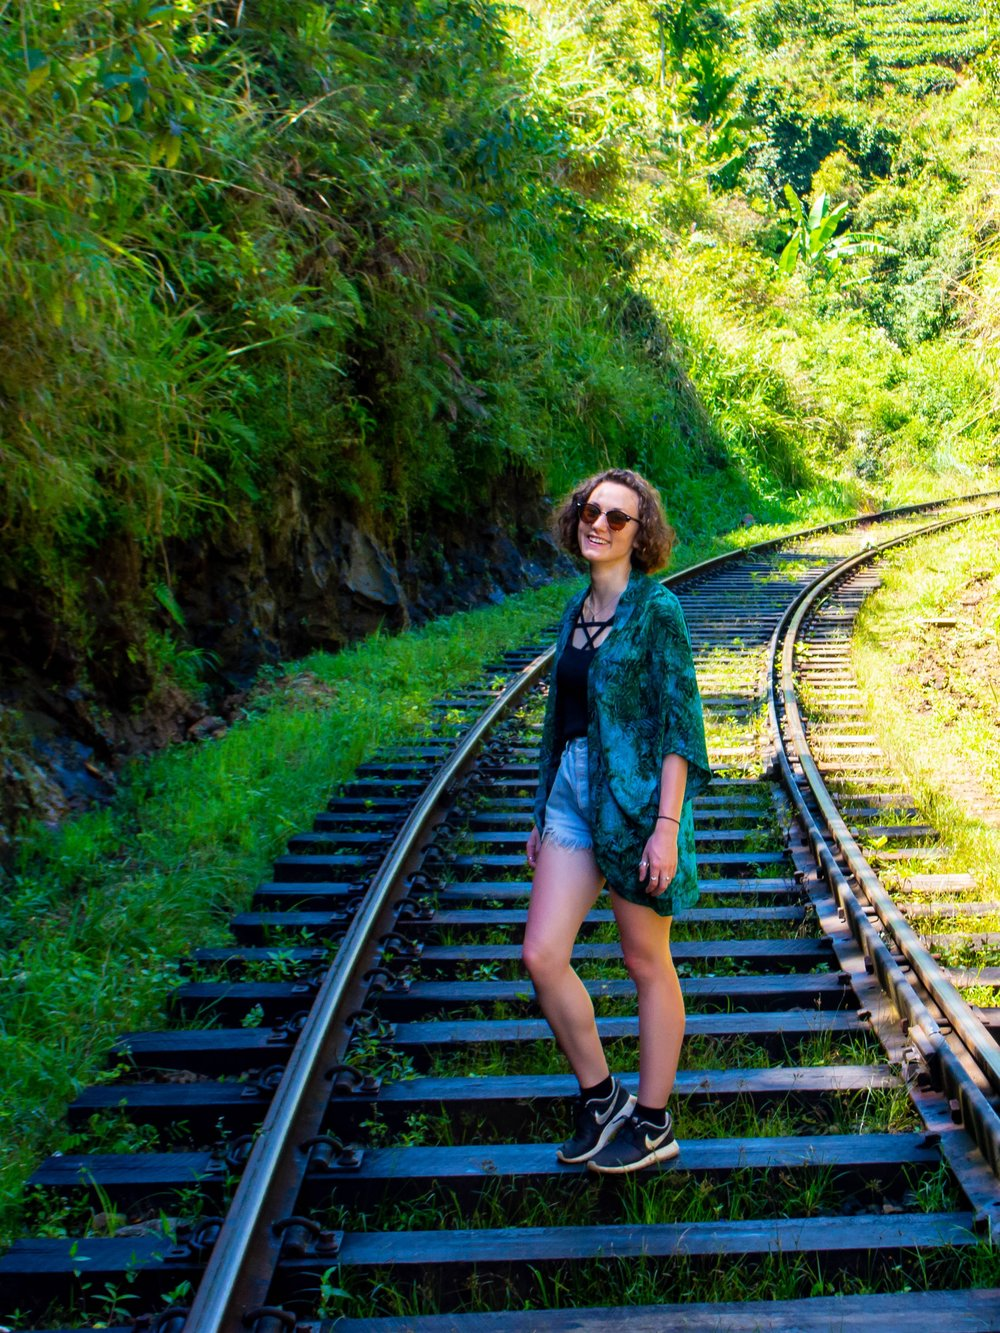 posing on the railway track